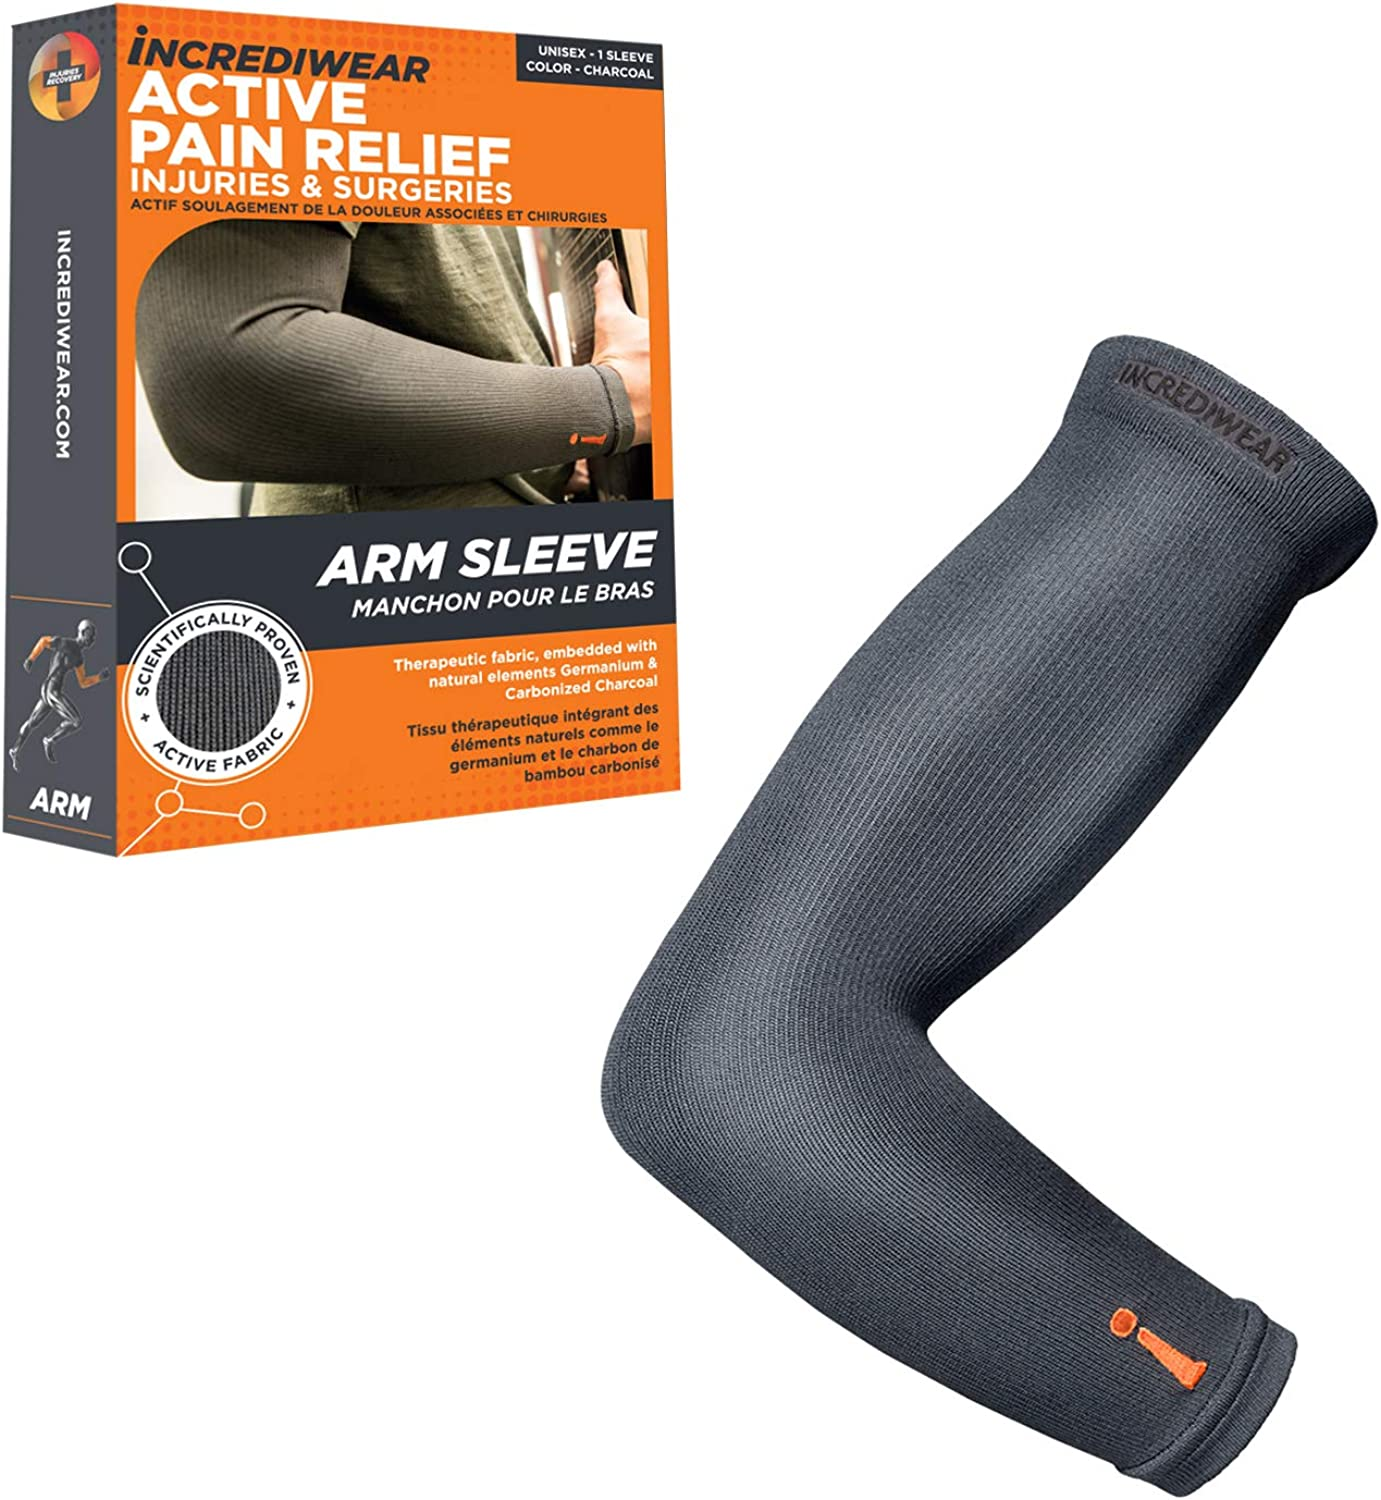 Incrediwear Arm Sleeves For Super special price Men Philadelphia Mall and Help to Women Recover Muscle